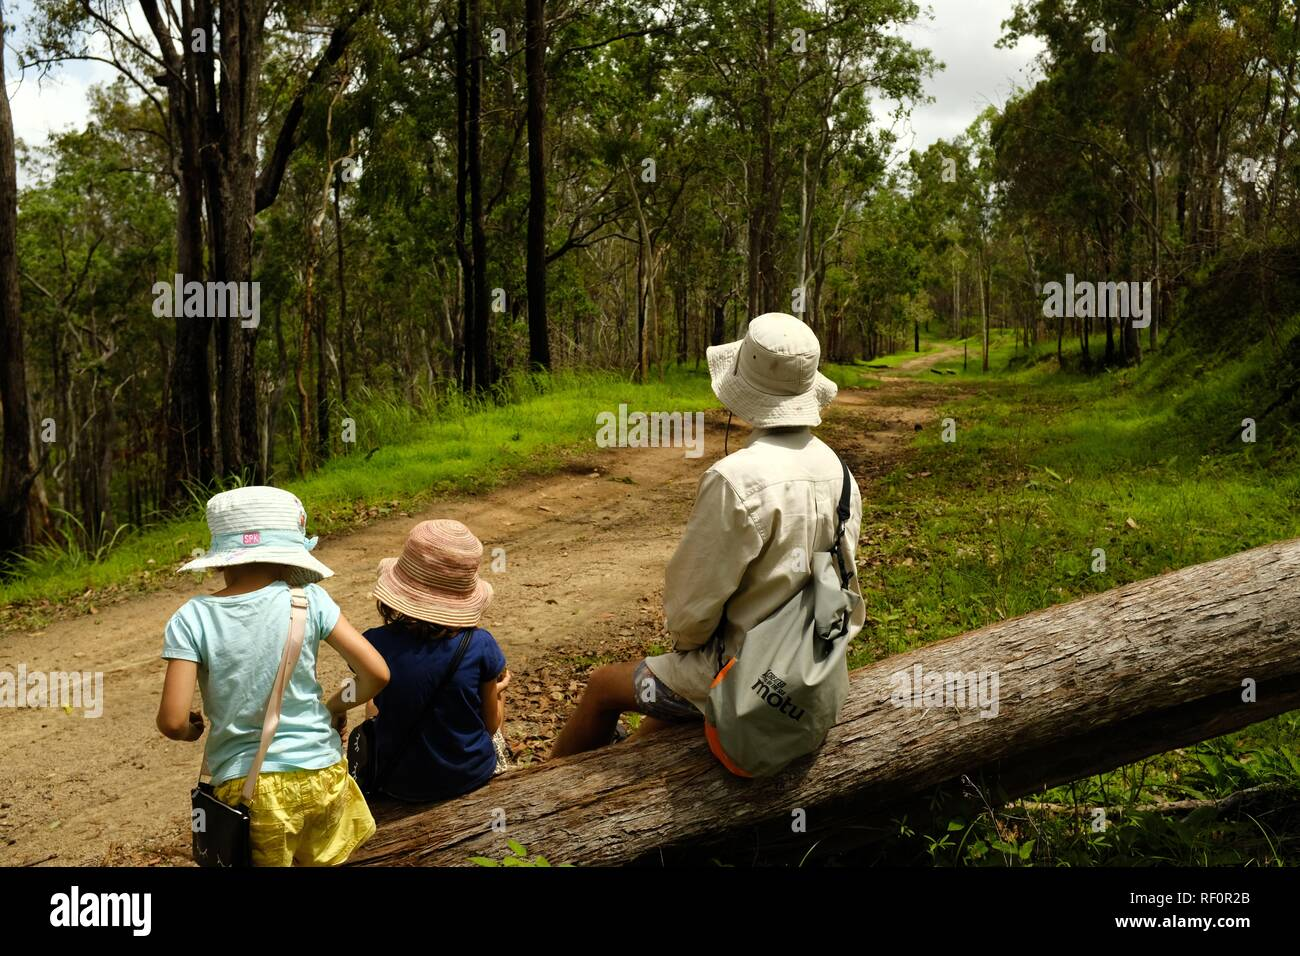 Children spending time with their father outdoors in a forest, Mia Mia State Forest, Queensland, Australia - Stock Image